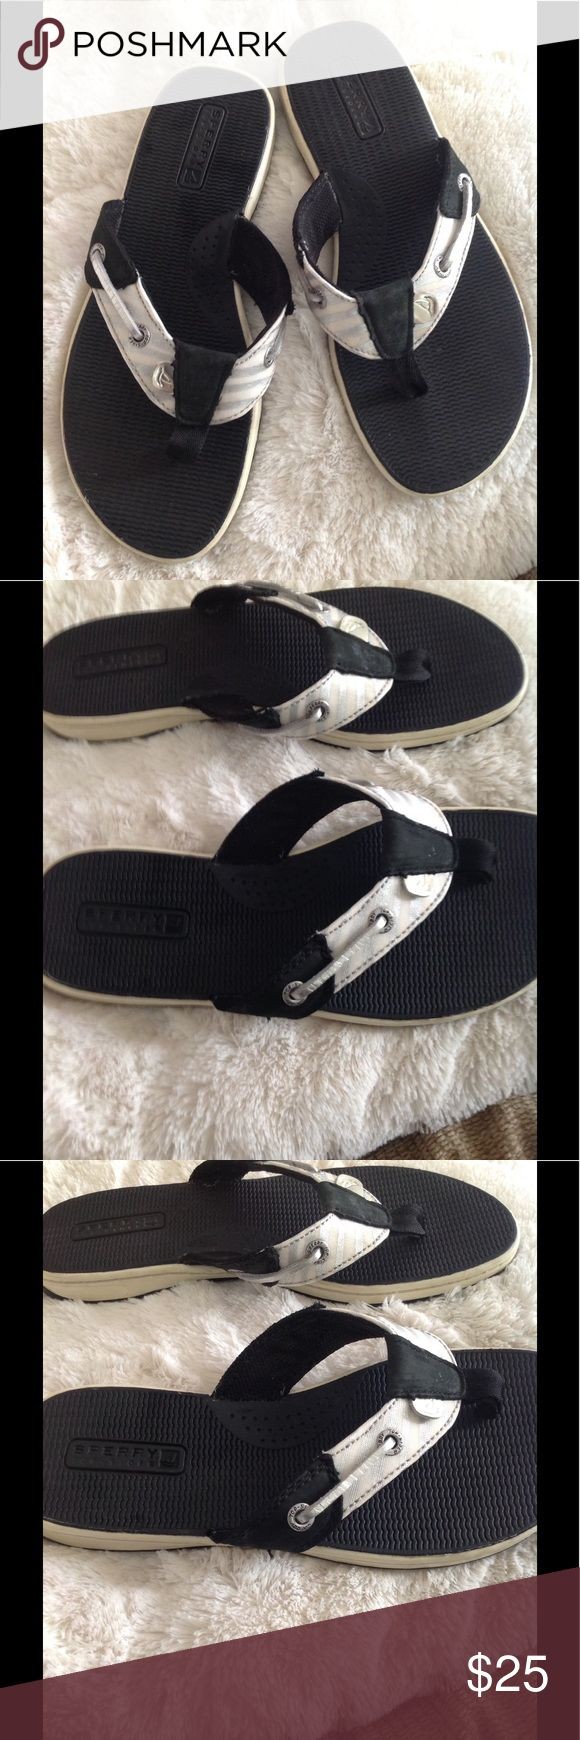 Sperry sandals Worn a few hours Sperry sandals excellent condition, no signs of wear. Sperry Top-Sider Shoes Sandals